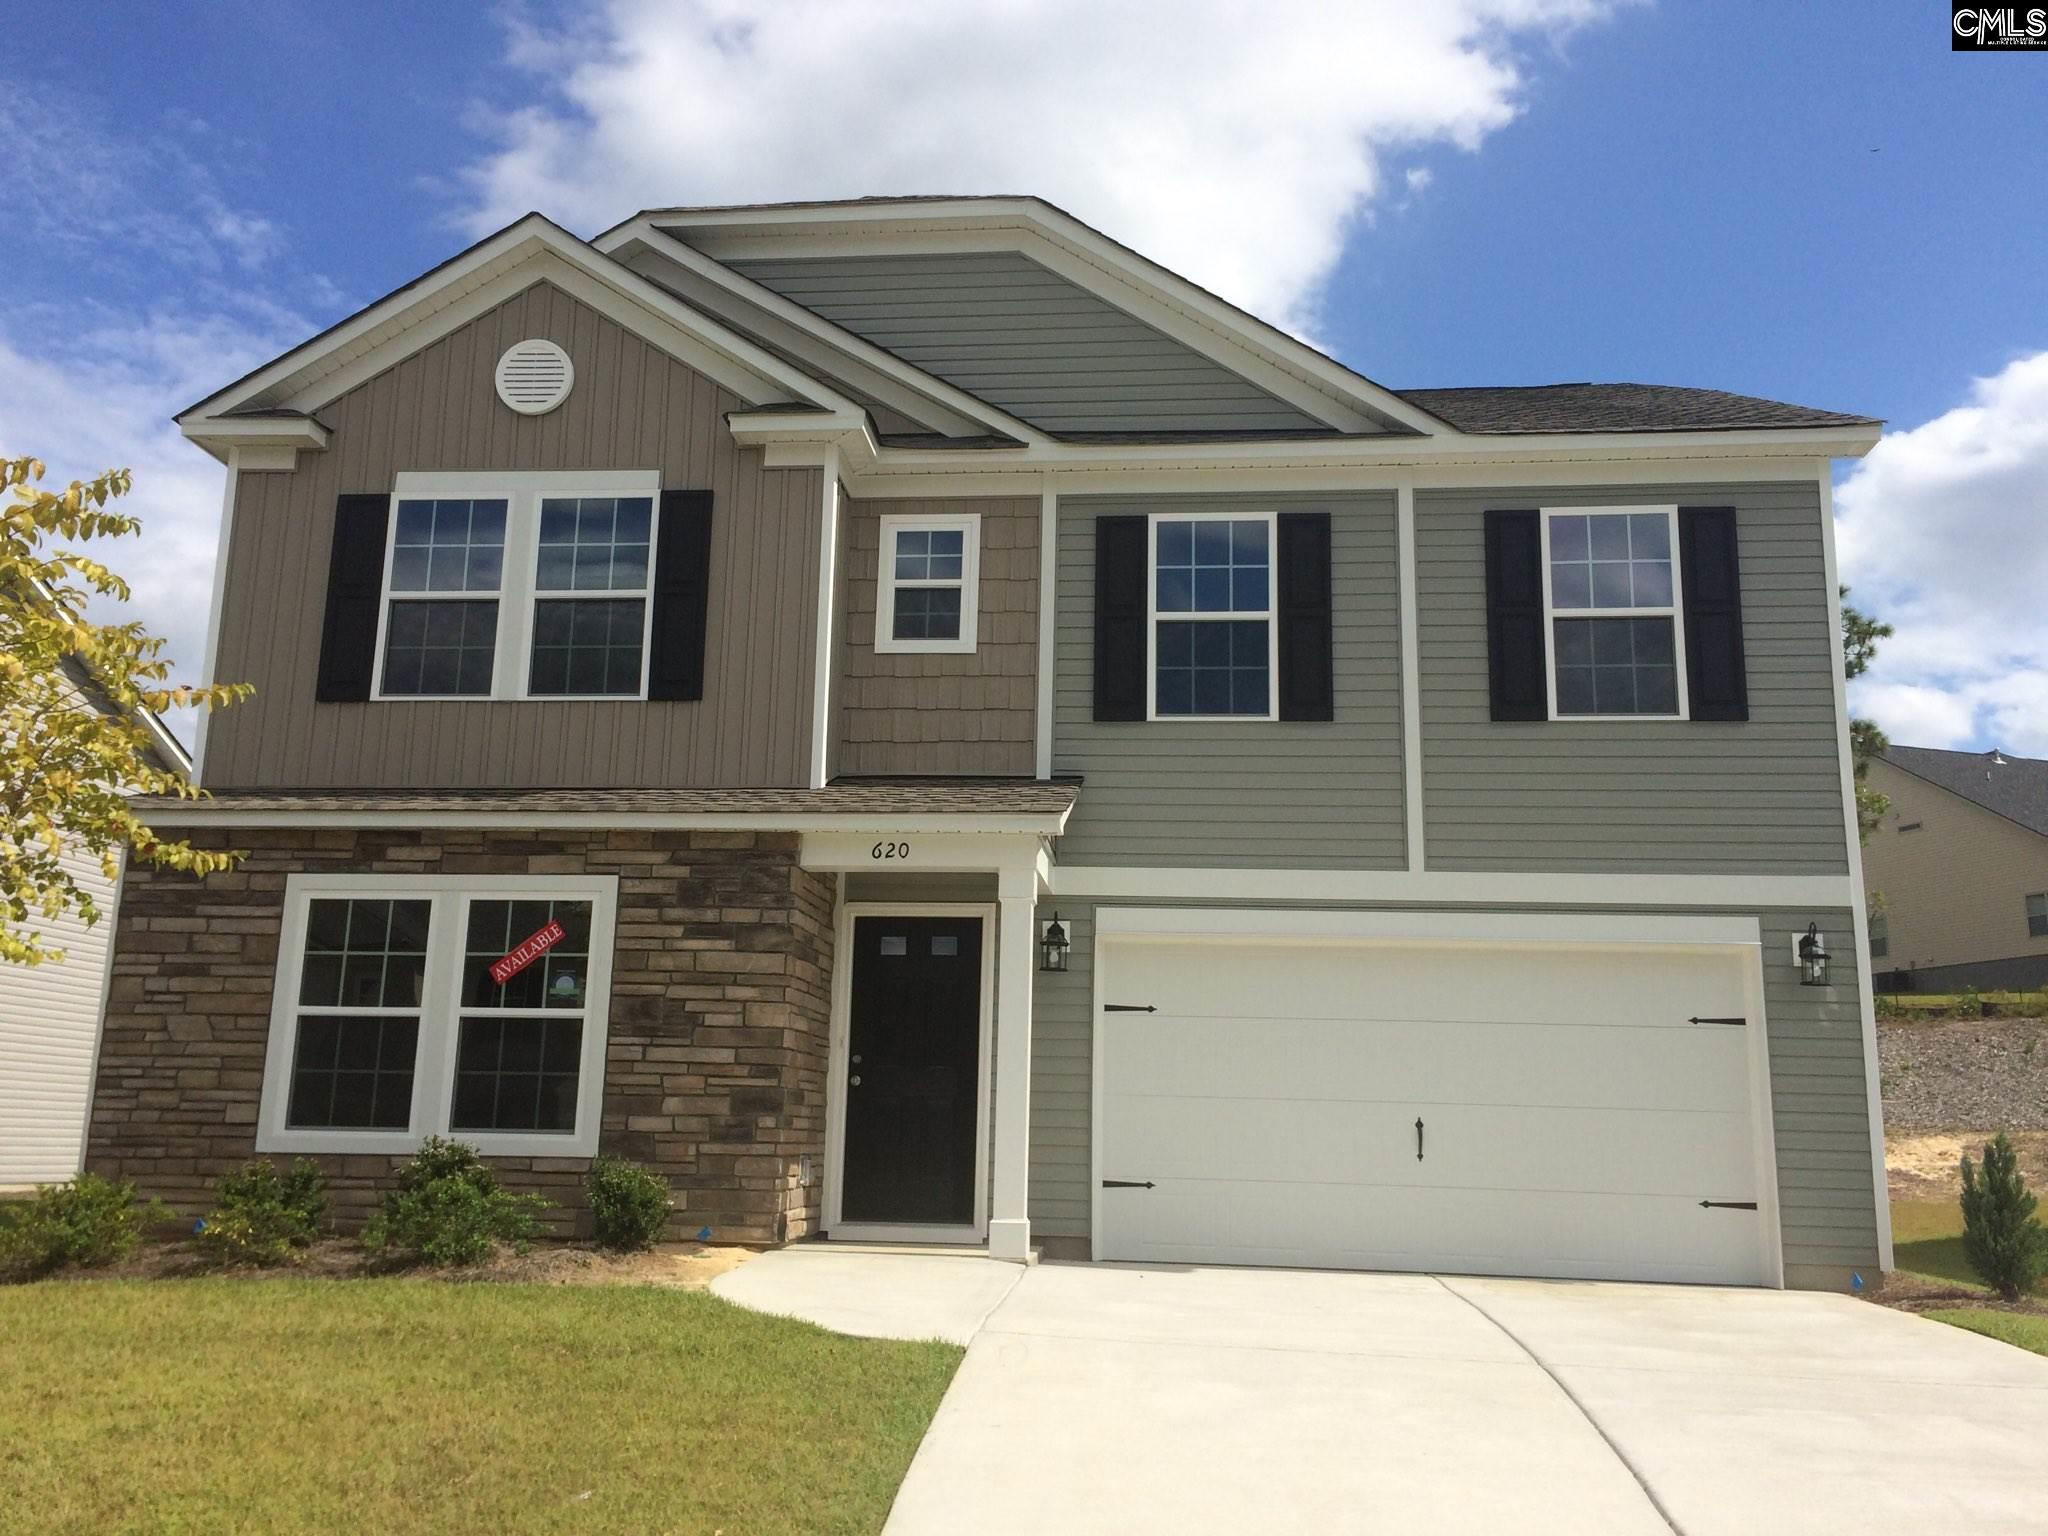 620 Teaberry Columbia, SC 29229